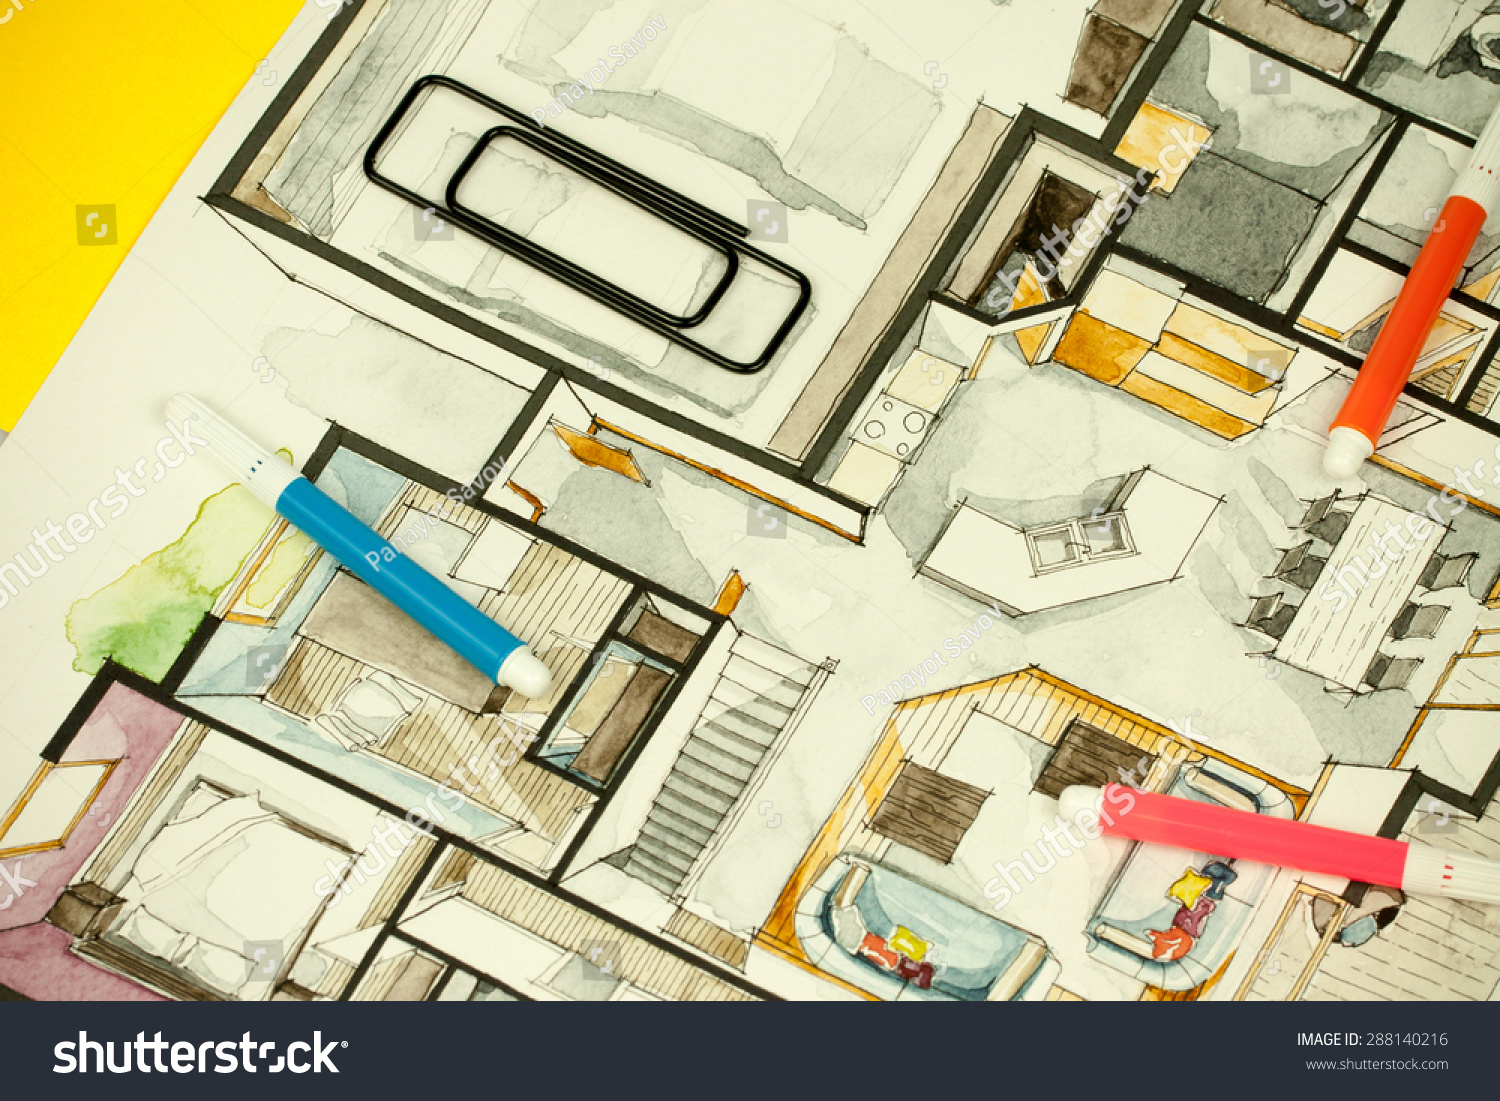 Image Of Architectural Design Floor Plan Sketch Drawing Illustration Interior Decoration Apartment Part Suitable